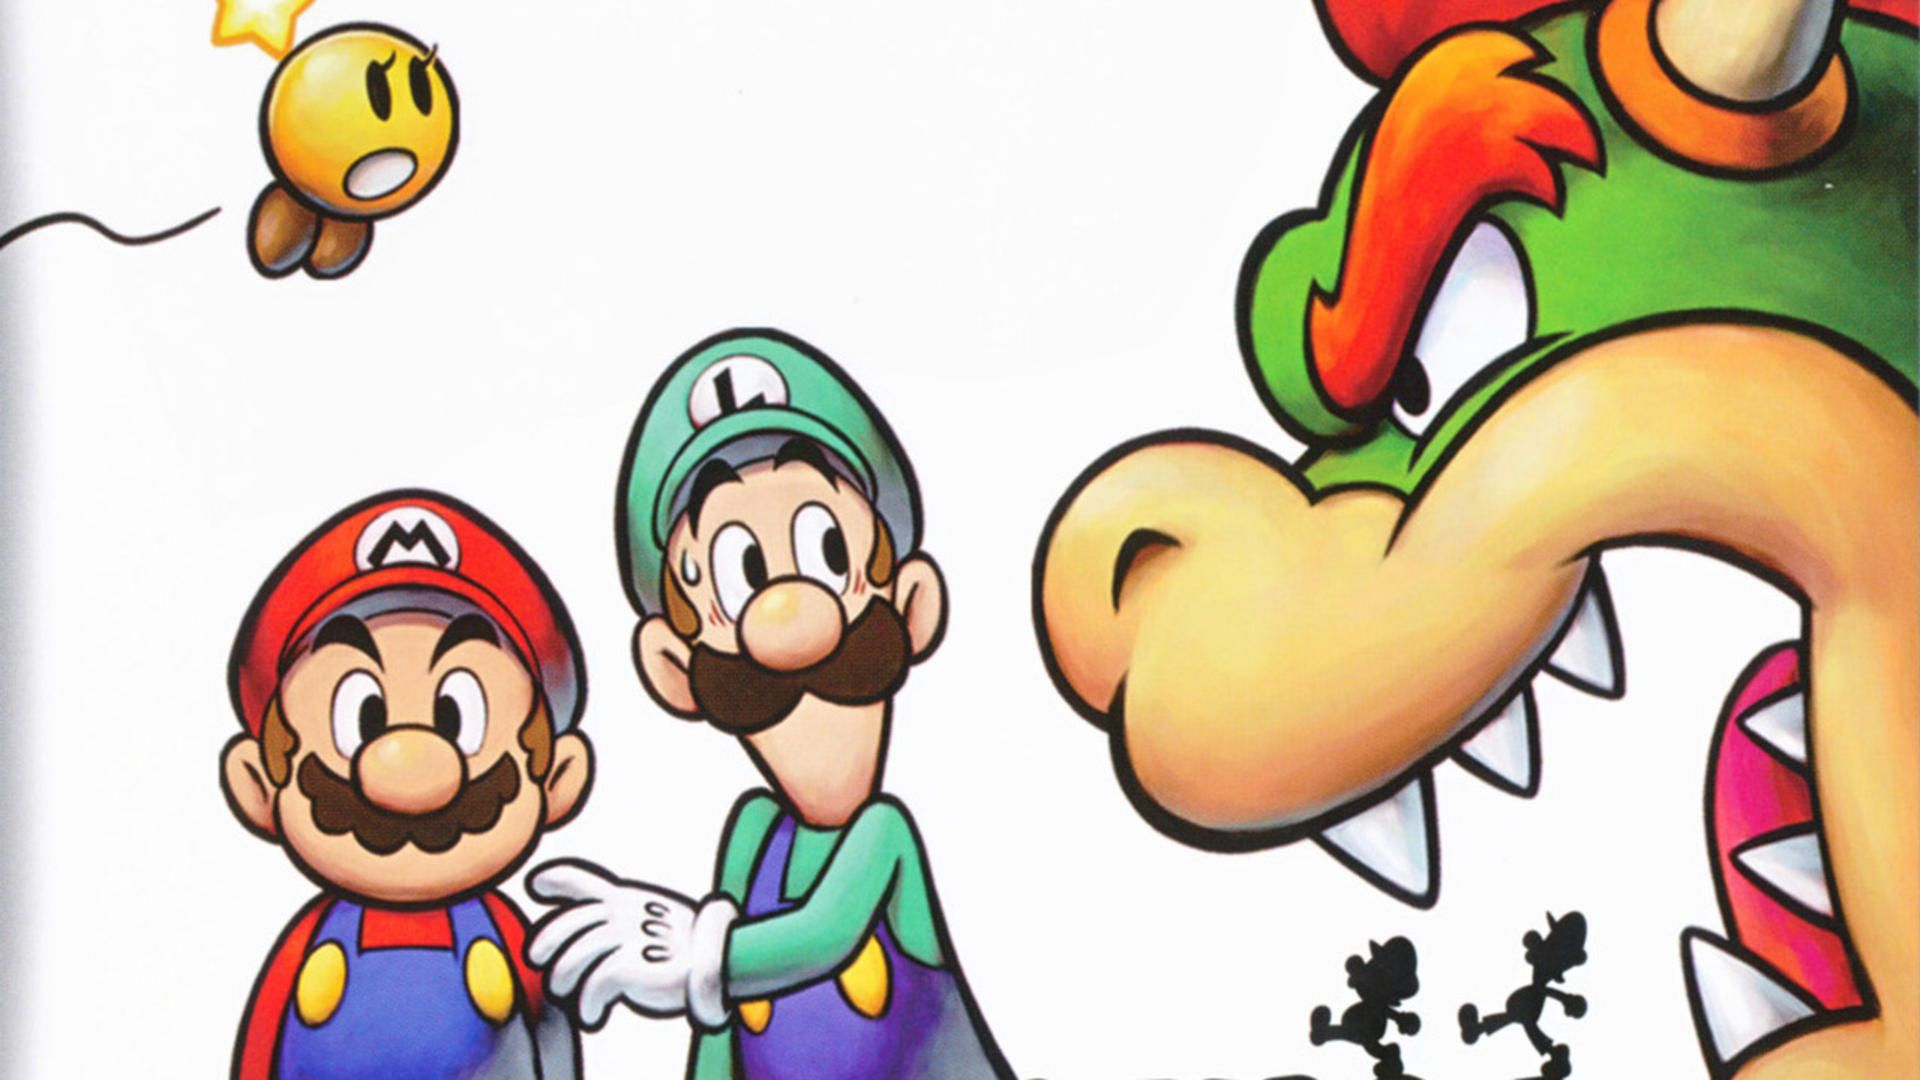 /7-best-mario-and-luigi-games-ranked-by-sales-fu173737 feature image